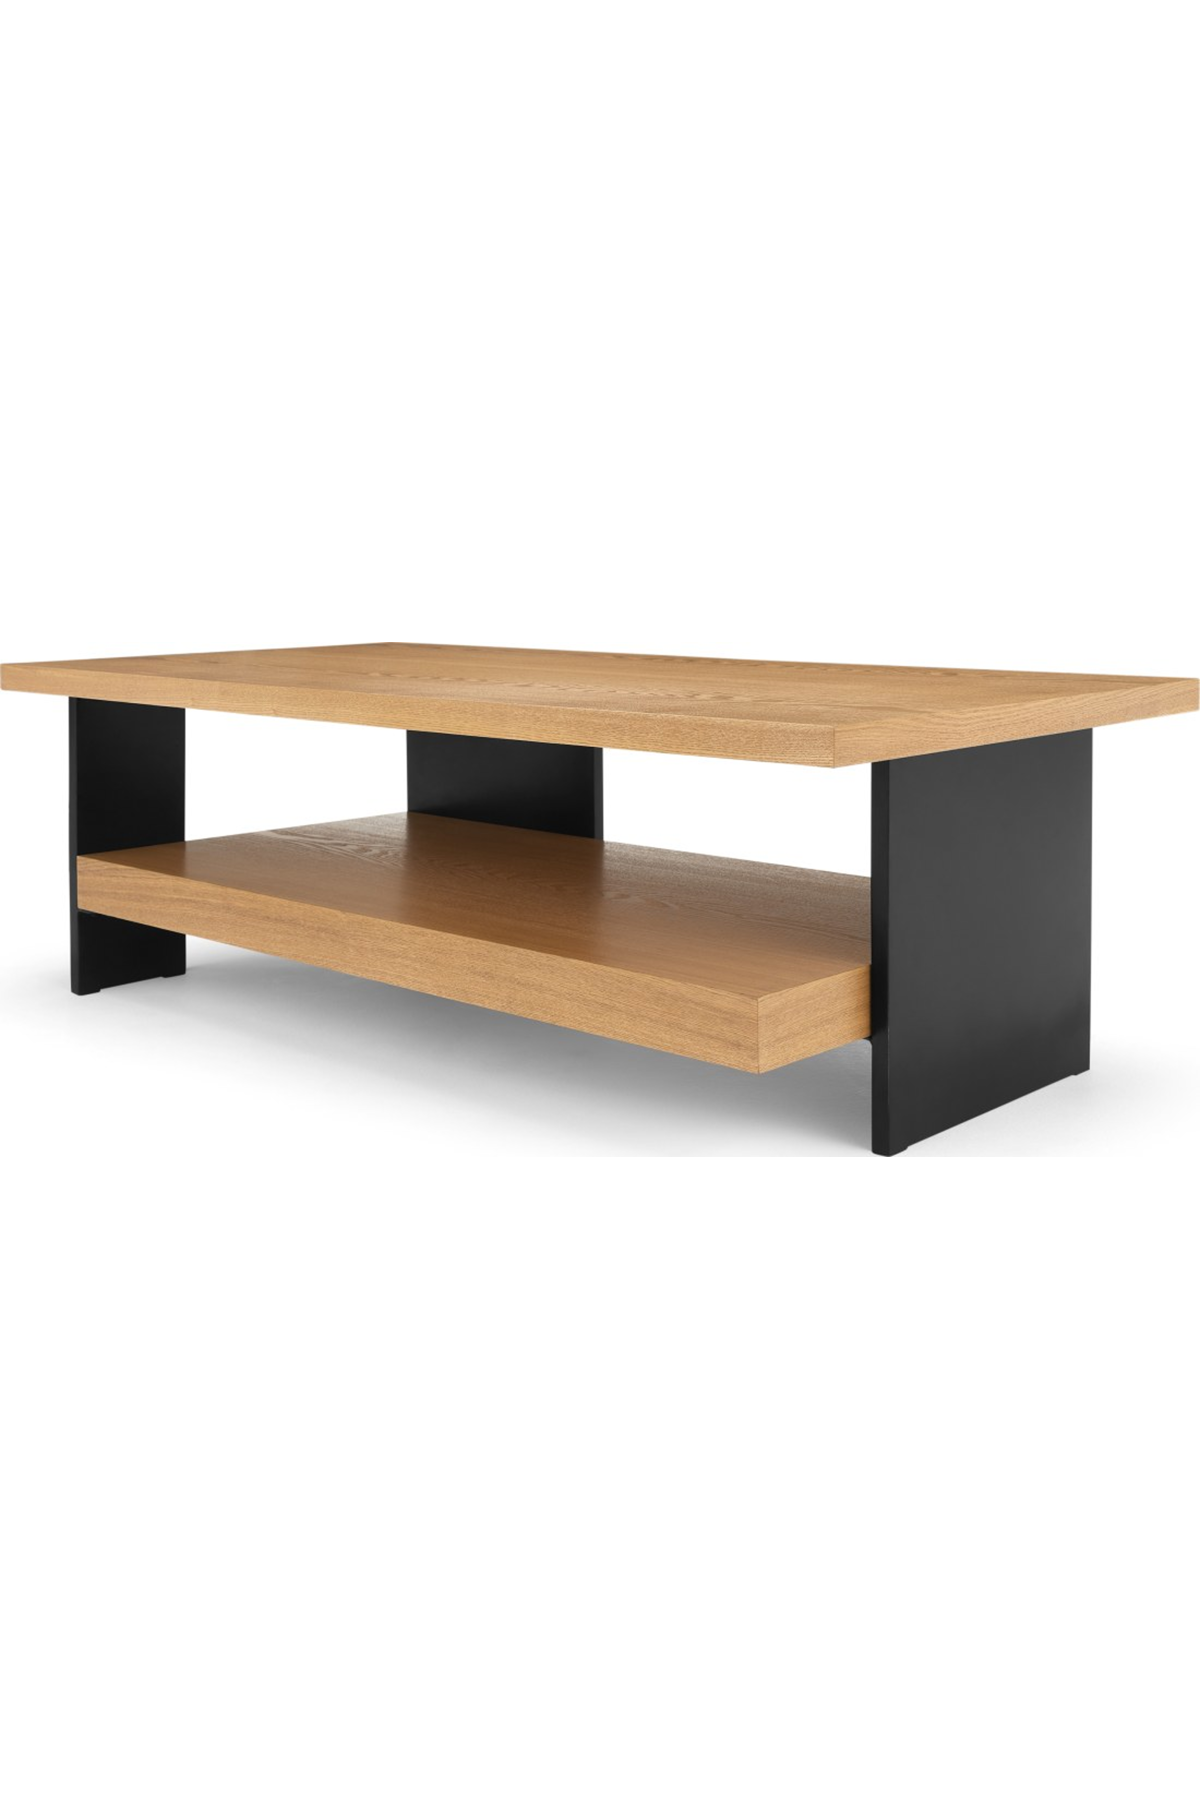 Travers Coffee Table Black Metal And Ash Made Coffee Table